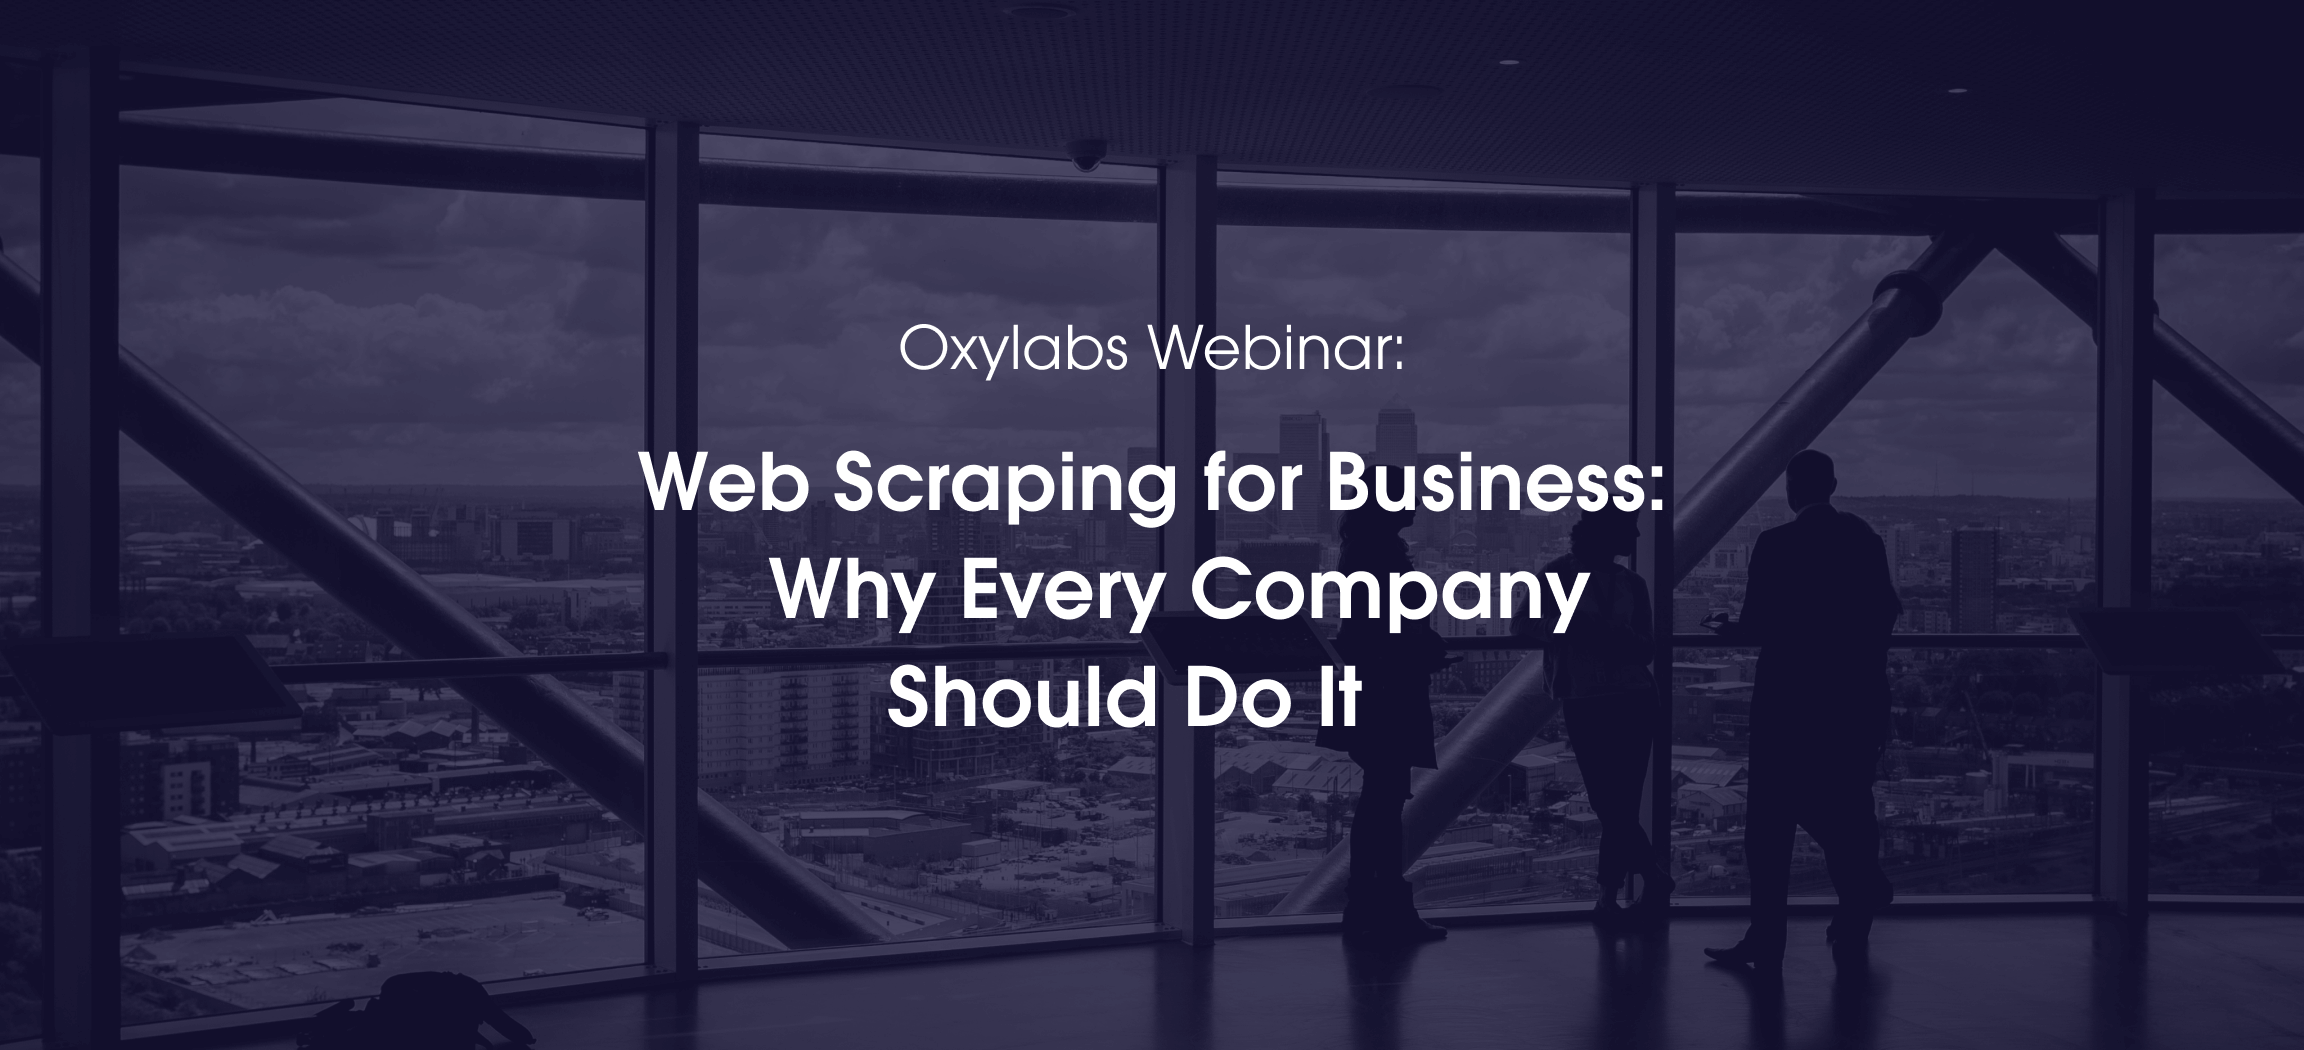 Oxylabs Webinar: Web Scraping for Business – Why Every Company Should Do It